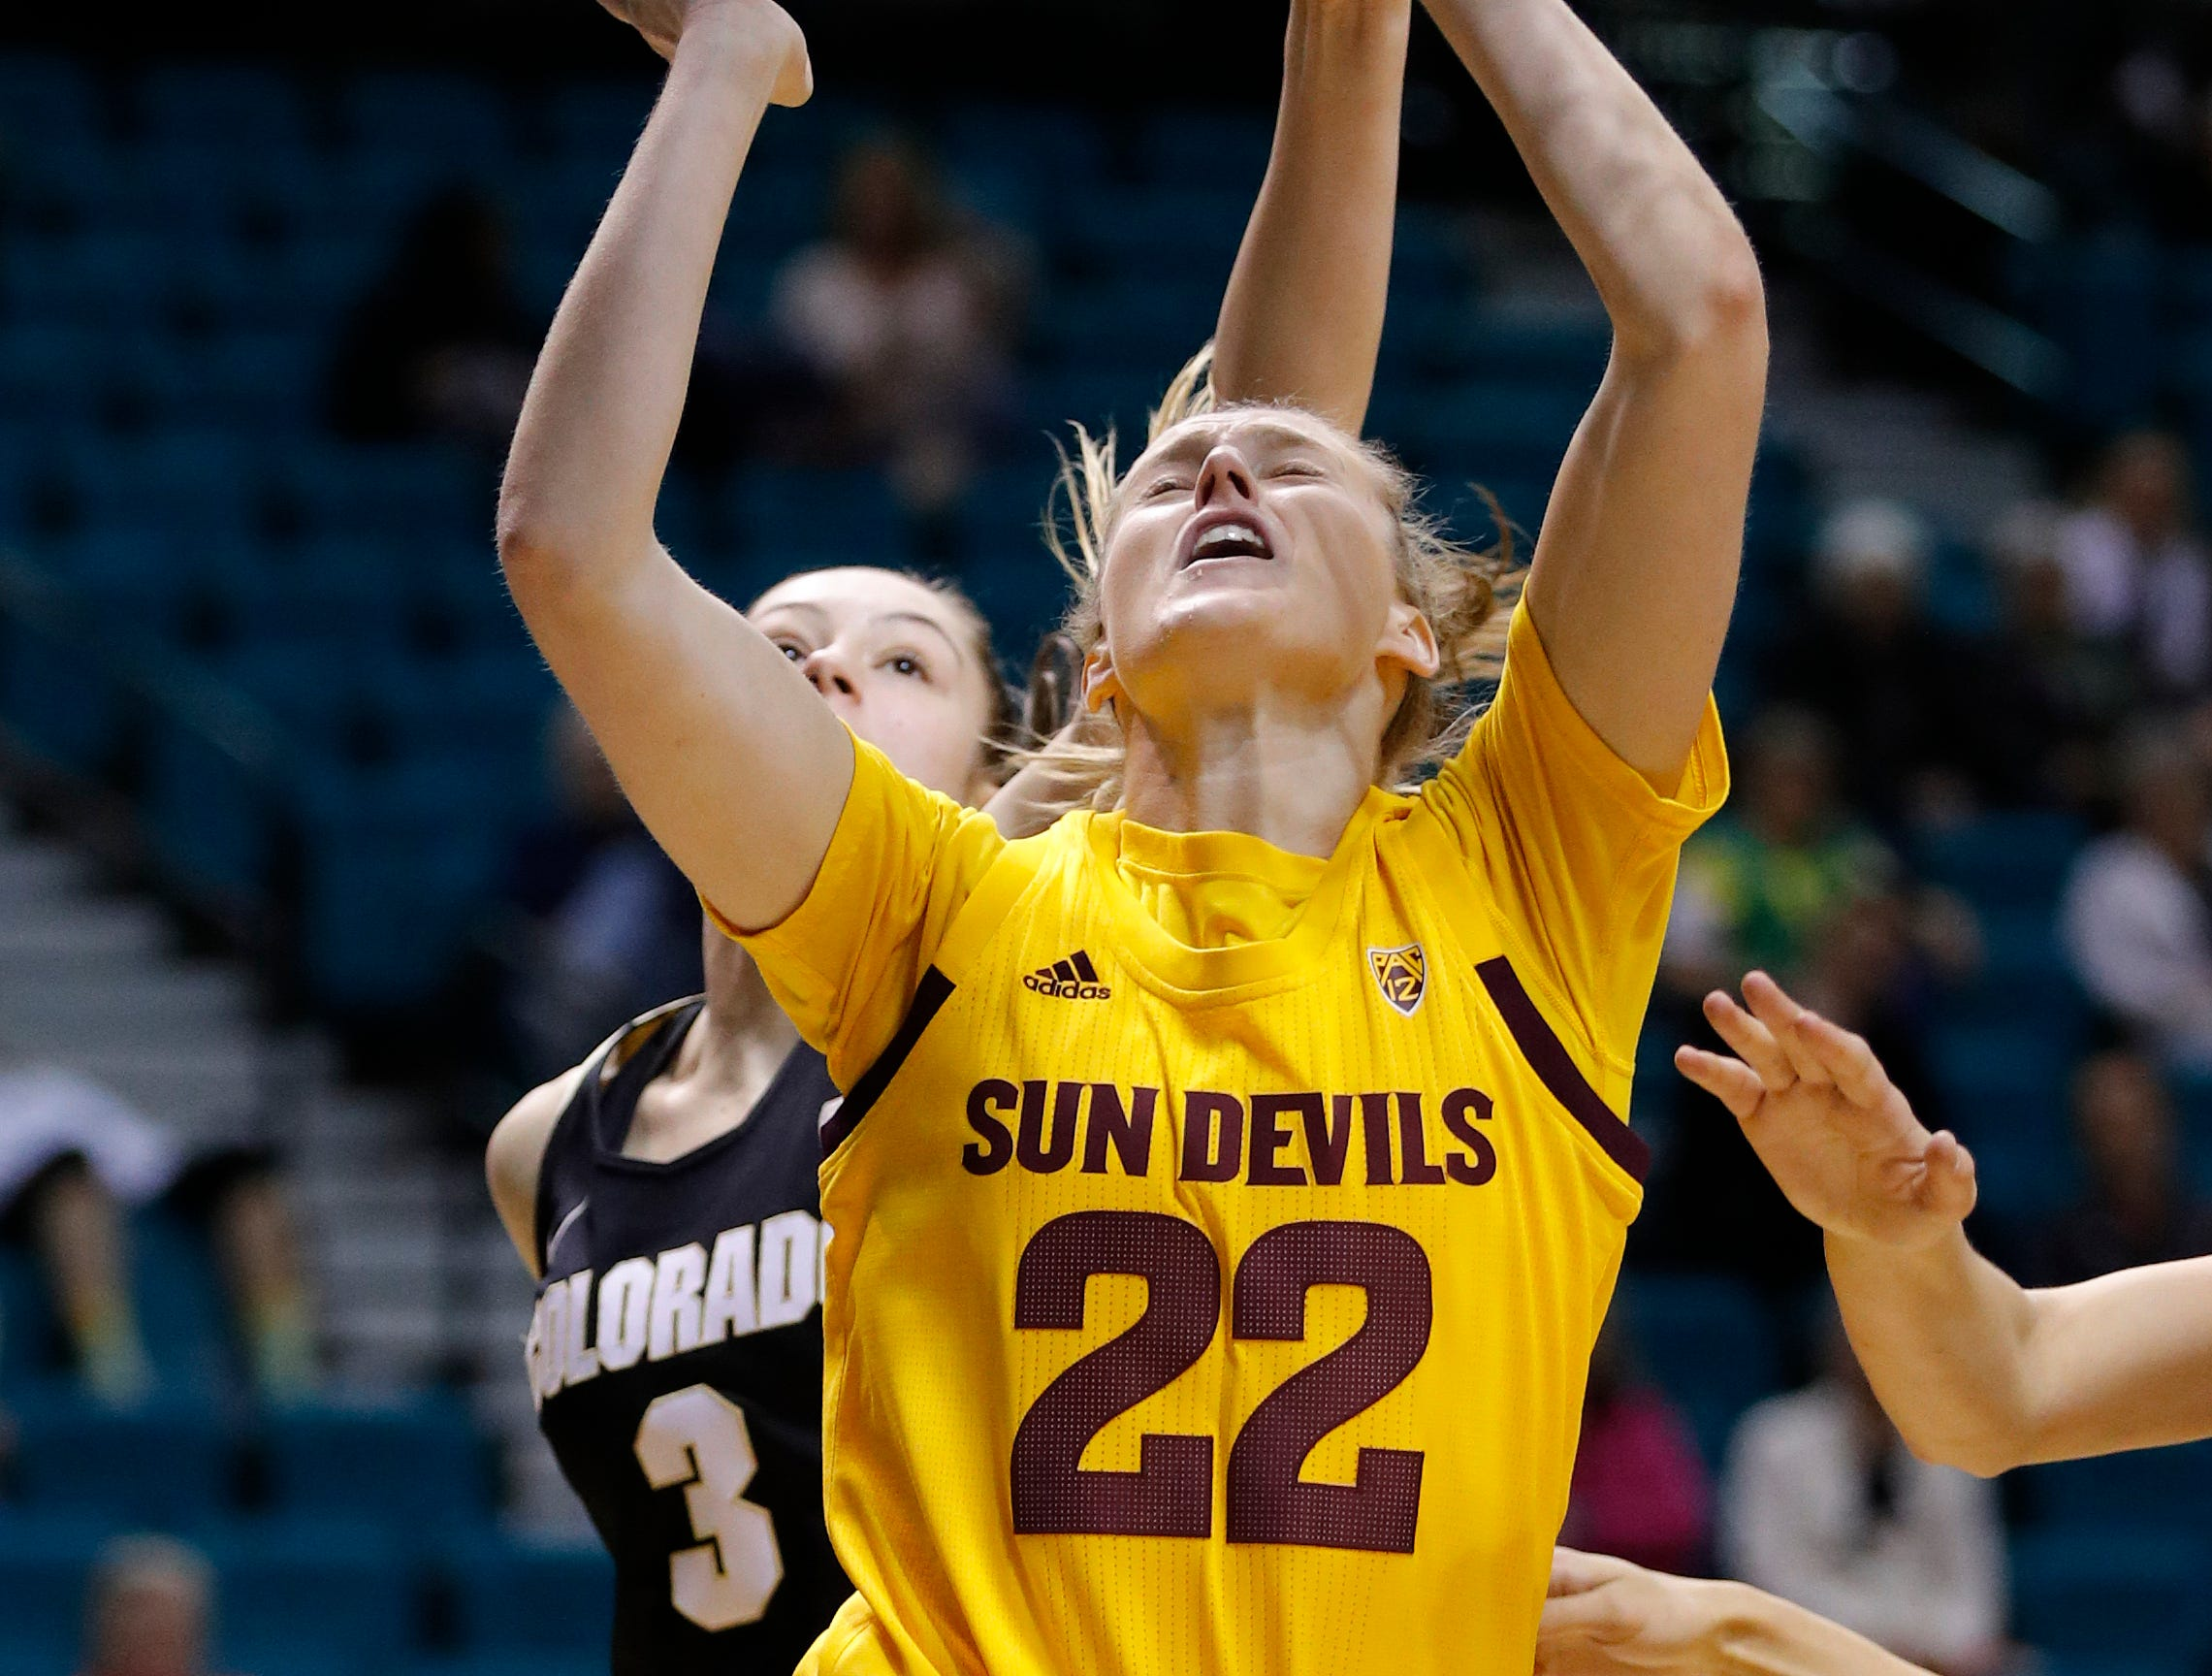 Colorado's Emma Clarke (3) knocks the ball away from Arizona State's Courtney Ekmark during the second half of an NCAA college basketball game at the Pac-12 women's tournament Thursday, March 7, 2019, in Las Vegas. (AP Photo/John Locher)